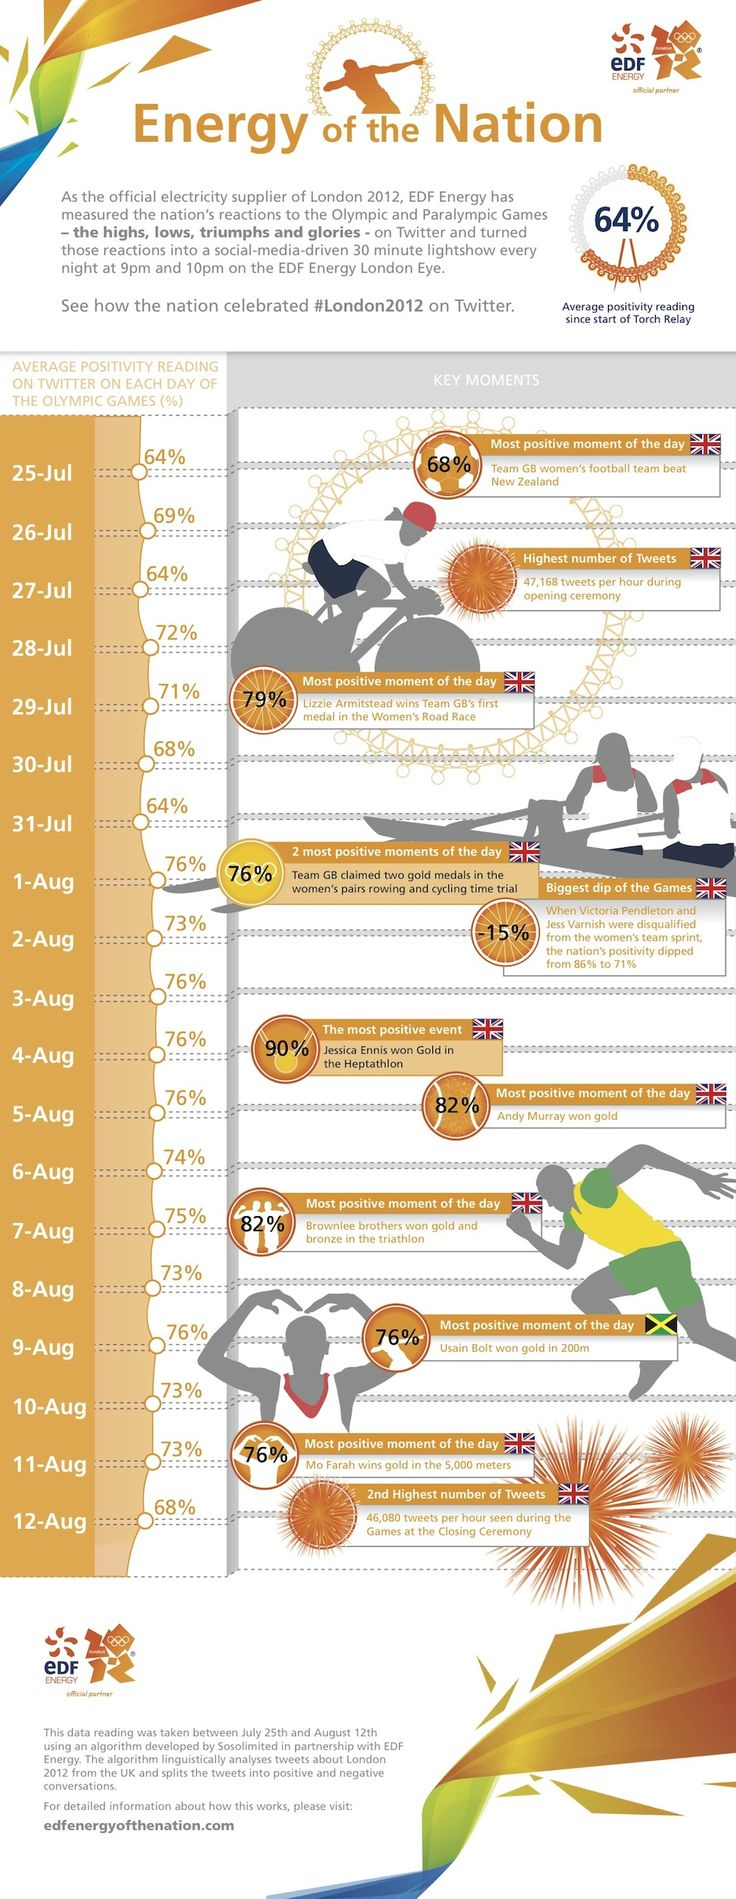 Throughout the Games Londoners were treated to a daily lightshow on The London Eye which showed Twitter sentiment for the Games that day. This infographic from EDF energy (below) picks out some of the highs and lows.